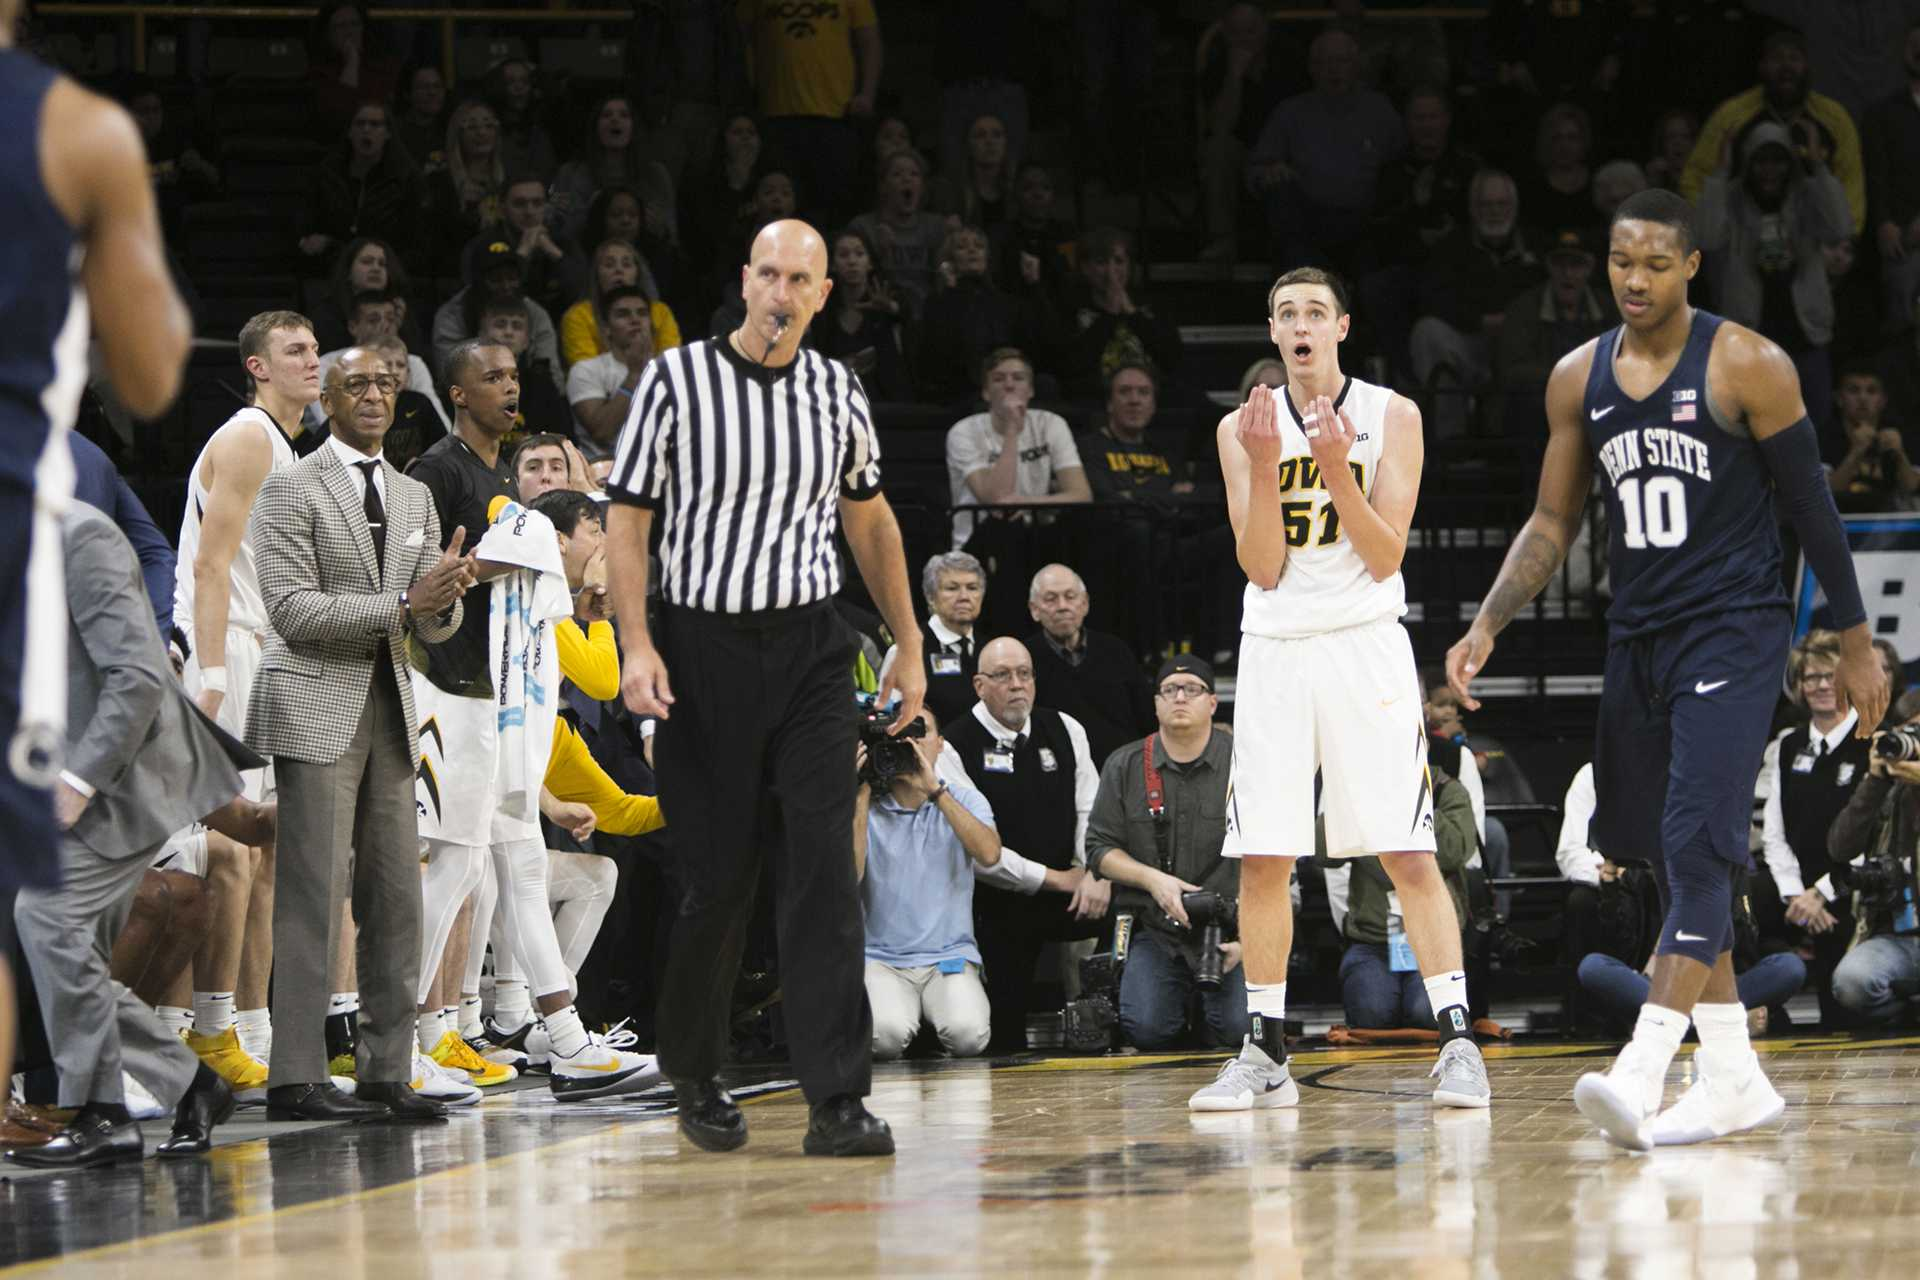 Iowa forward Nicholas Baer reacts to being called for a foul during an Iowa/Penn State men's basketball game in Carver-Hawkeye Arena on Saturday, Dec. 2, 2017. The Nittany Lions defeated the Hawkeyes, 77-73. (Joseph Cress/The Daily Iowan)